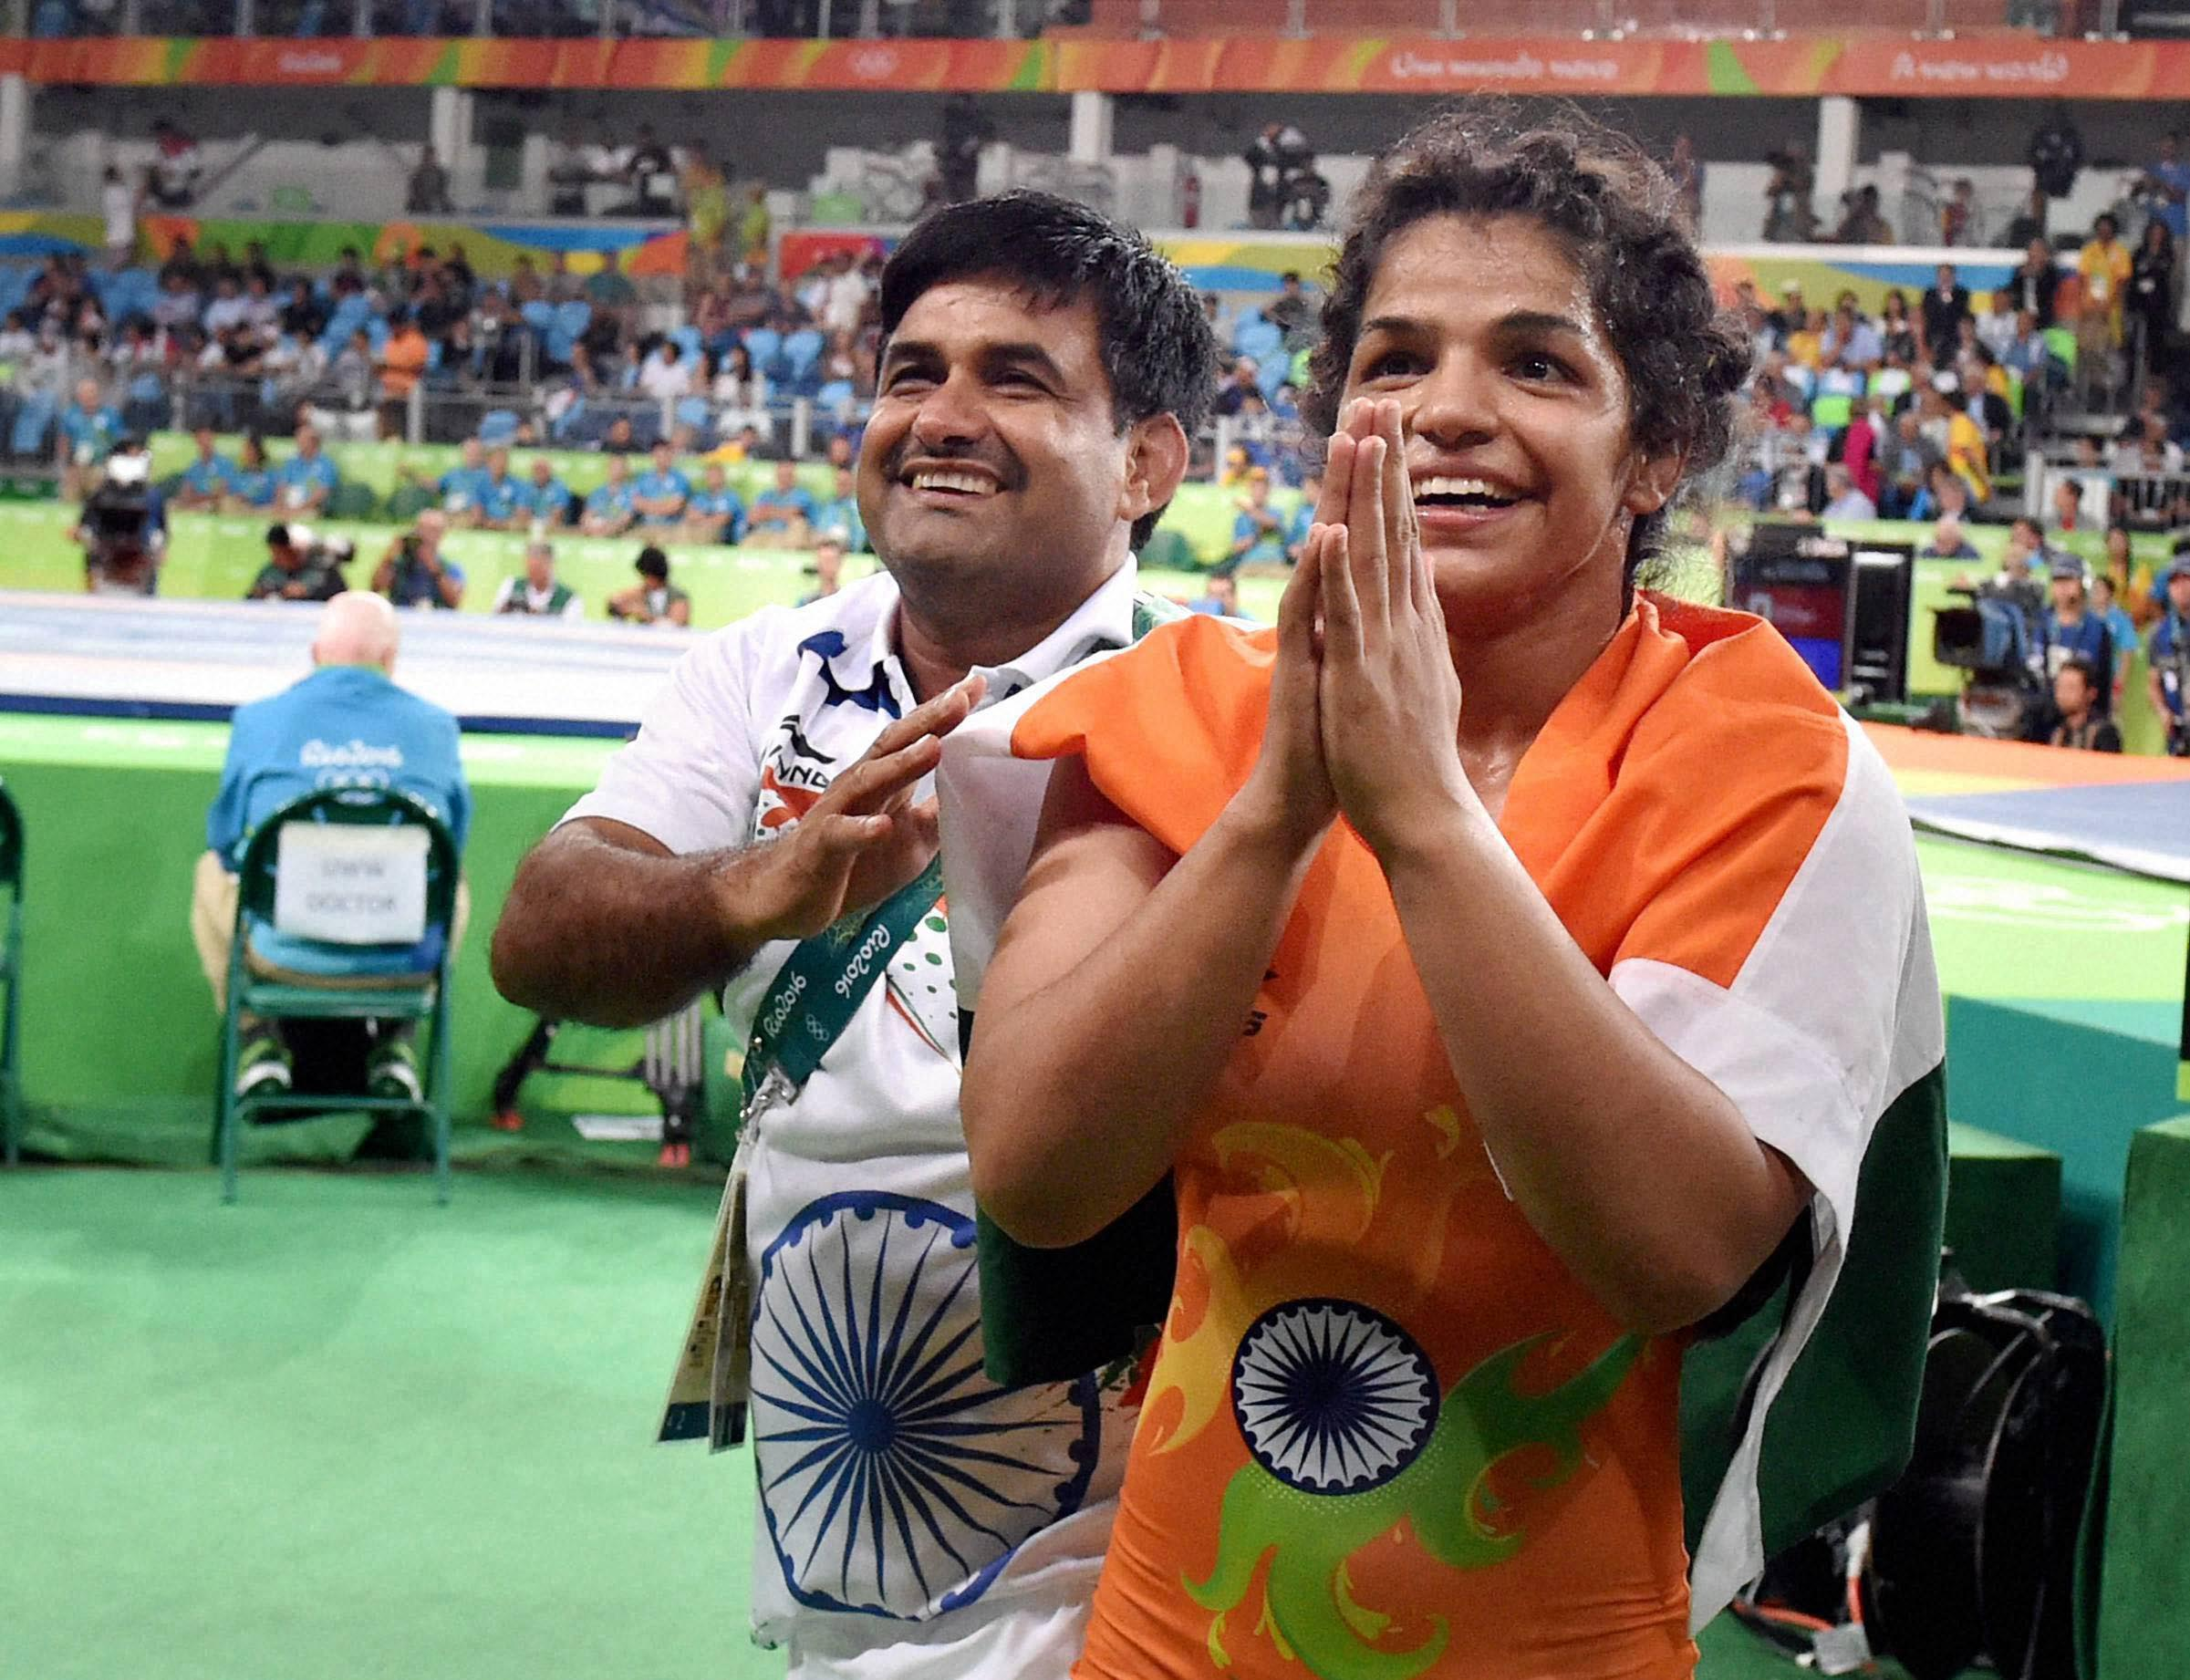 Rio de Janerio : India's Sakshi Malik along with her coach Kuldeep Singh celebrates after winning bronze medal of the women's wrestling freestyle 58-kg competition, at the 2016 Summer Olympics in Rio de Janerio, Brazil on Wednesday. PTI Photo by Atul Yadav (PTI8_18_2016_000217B)